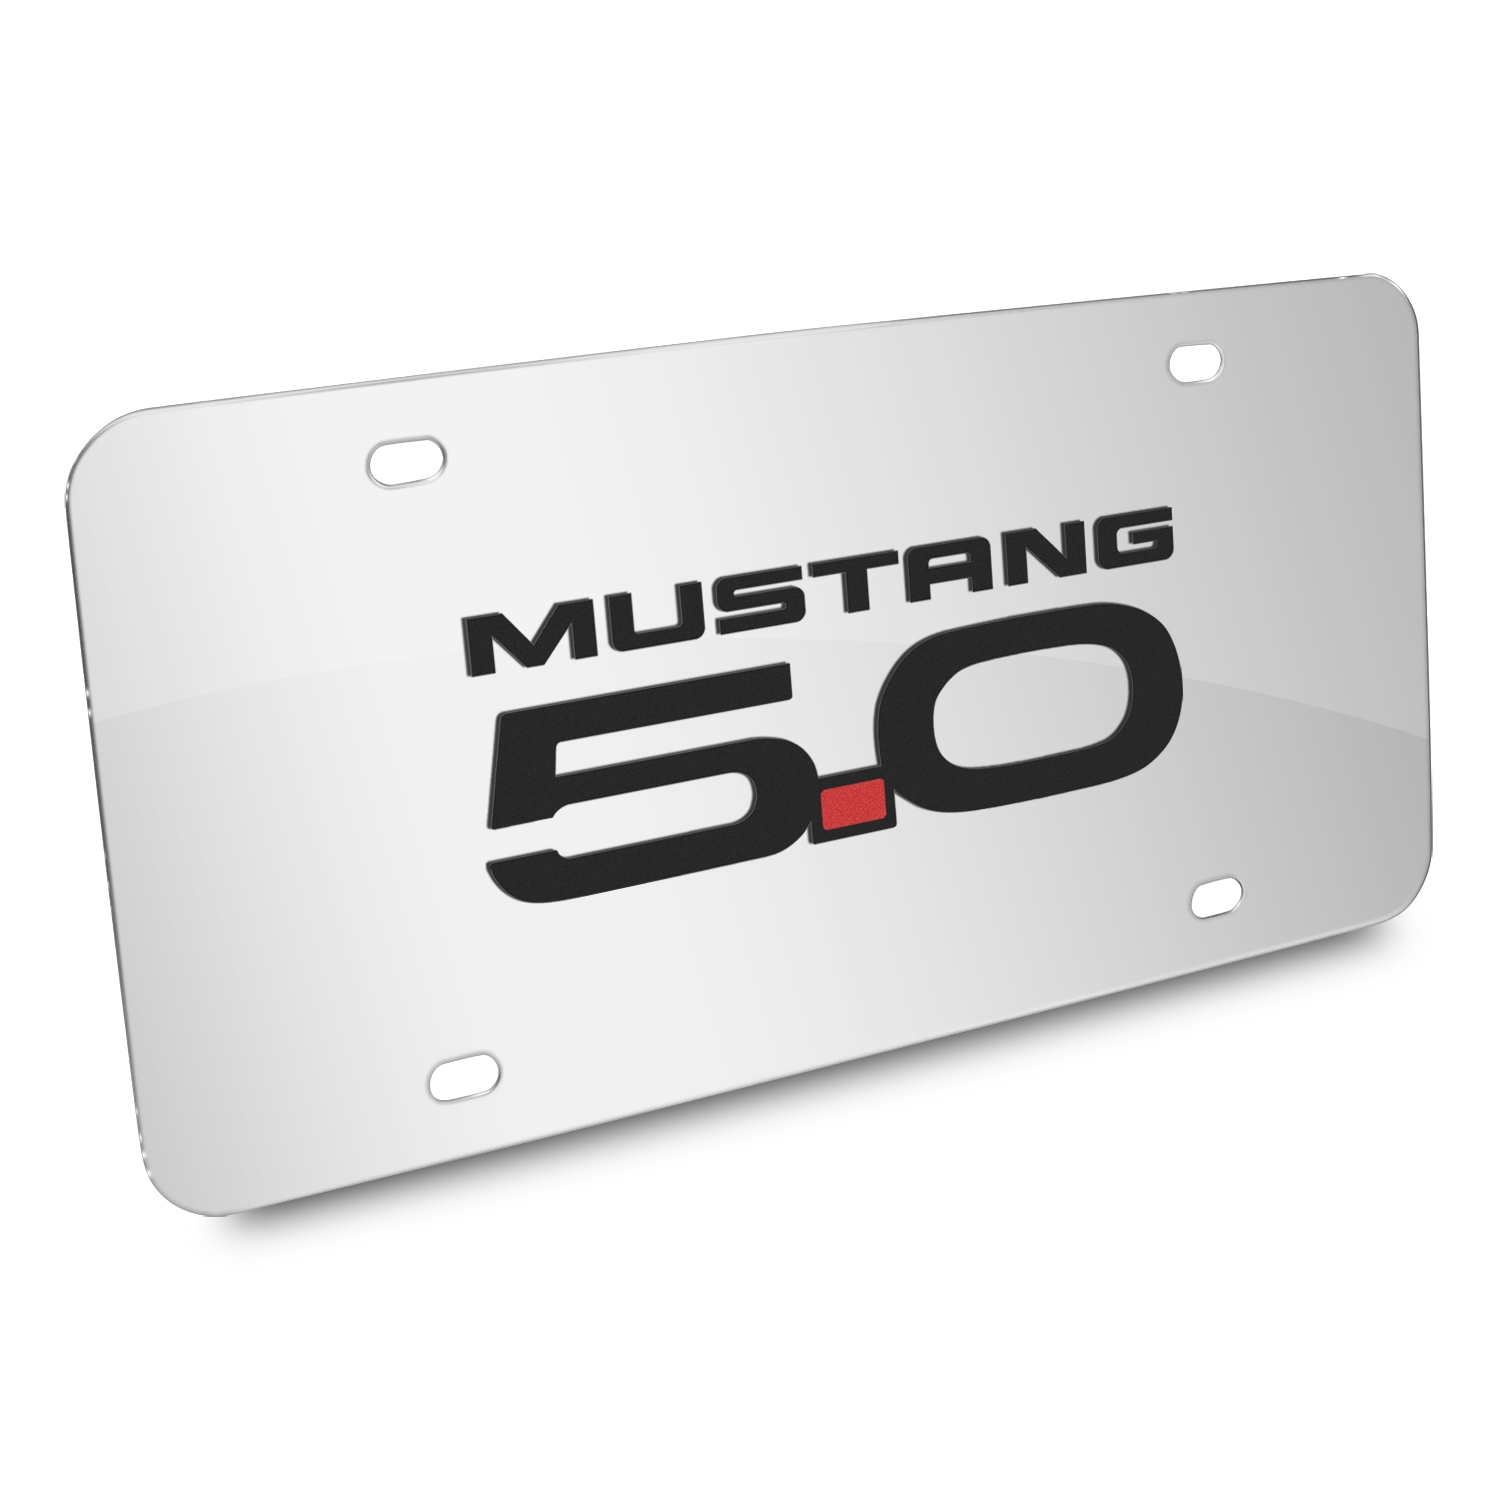 Ford Mustang GT 5.0 3D Mirror Chrome Stainless Steel License Plate